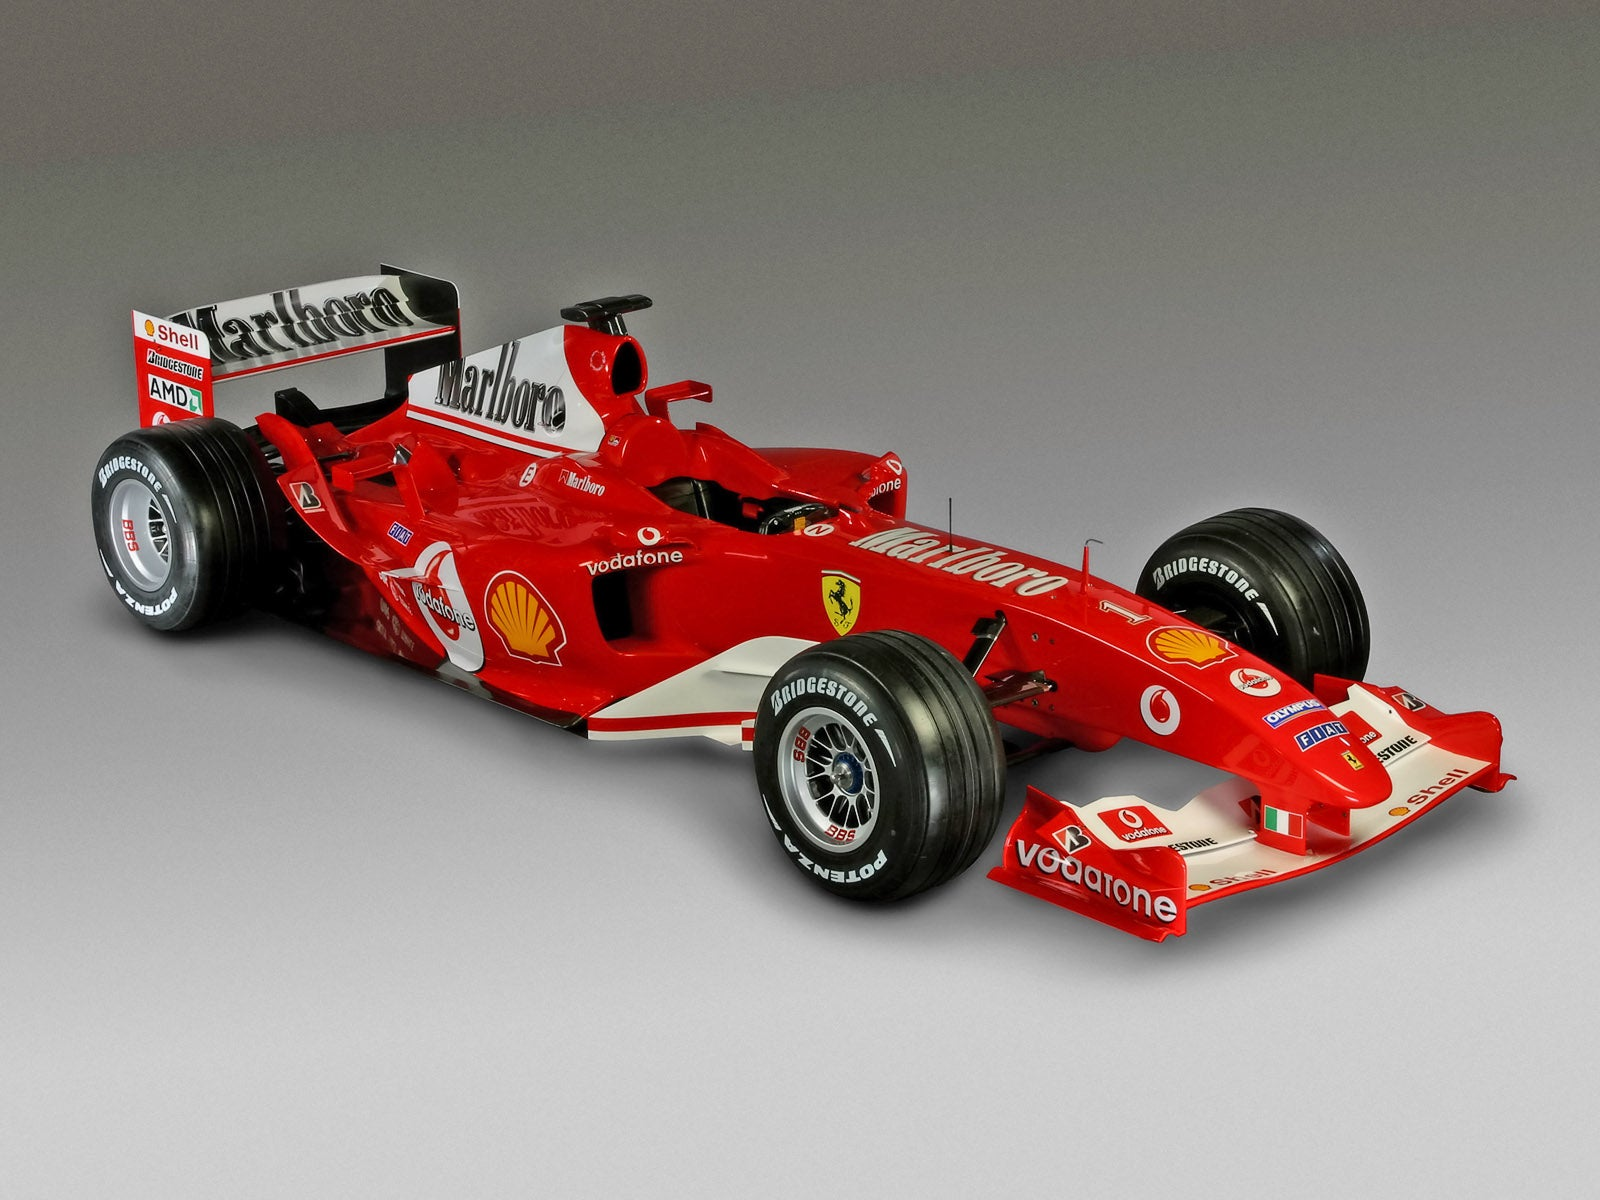 ferrari f2004 remembering the best formula 1 car ever. Black Bedroom Furniture Sets. Home Design Ideas